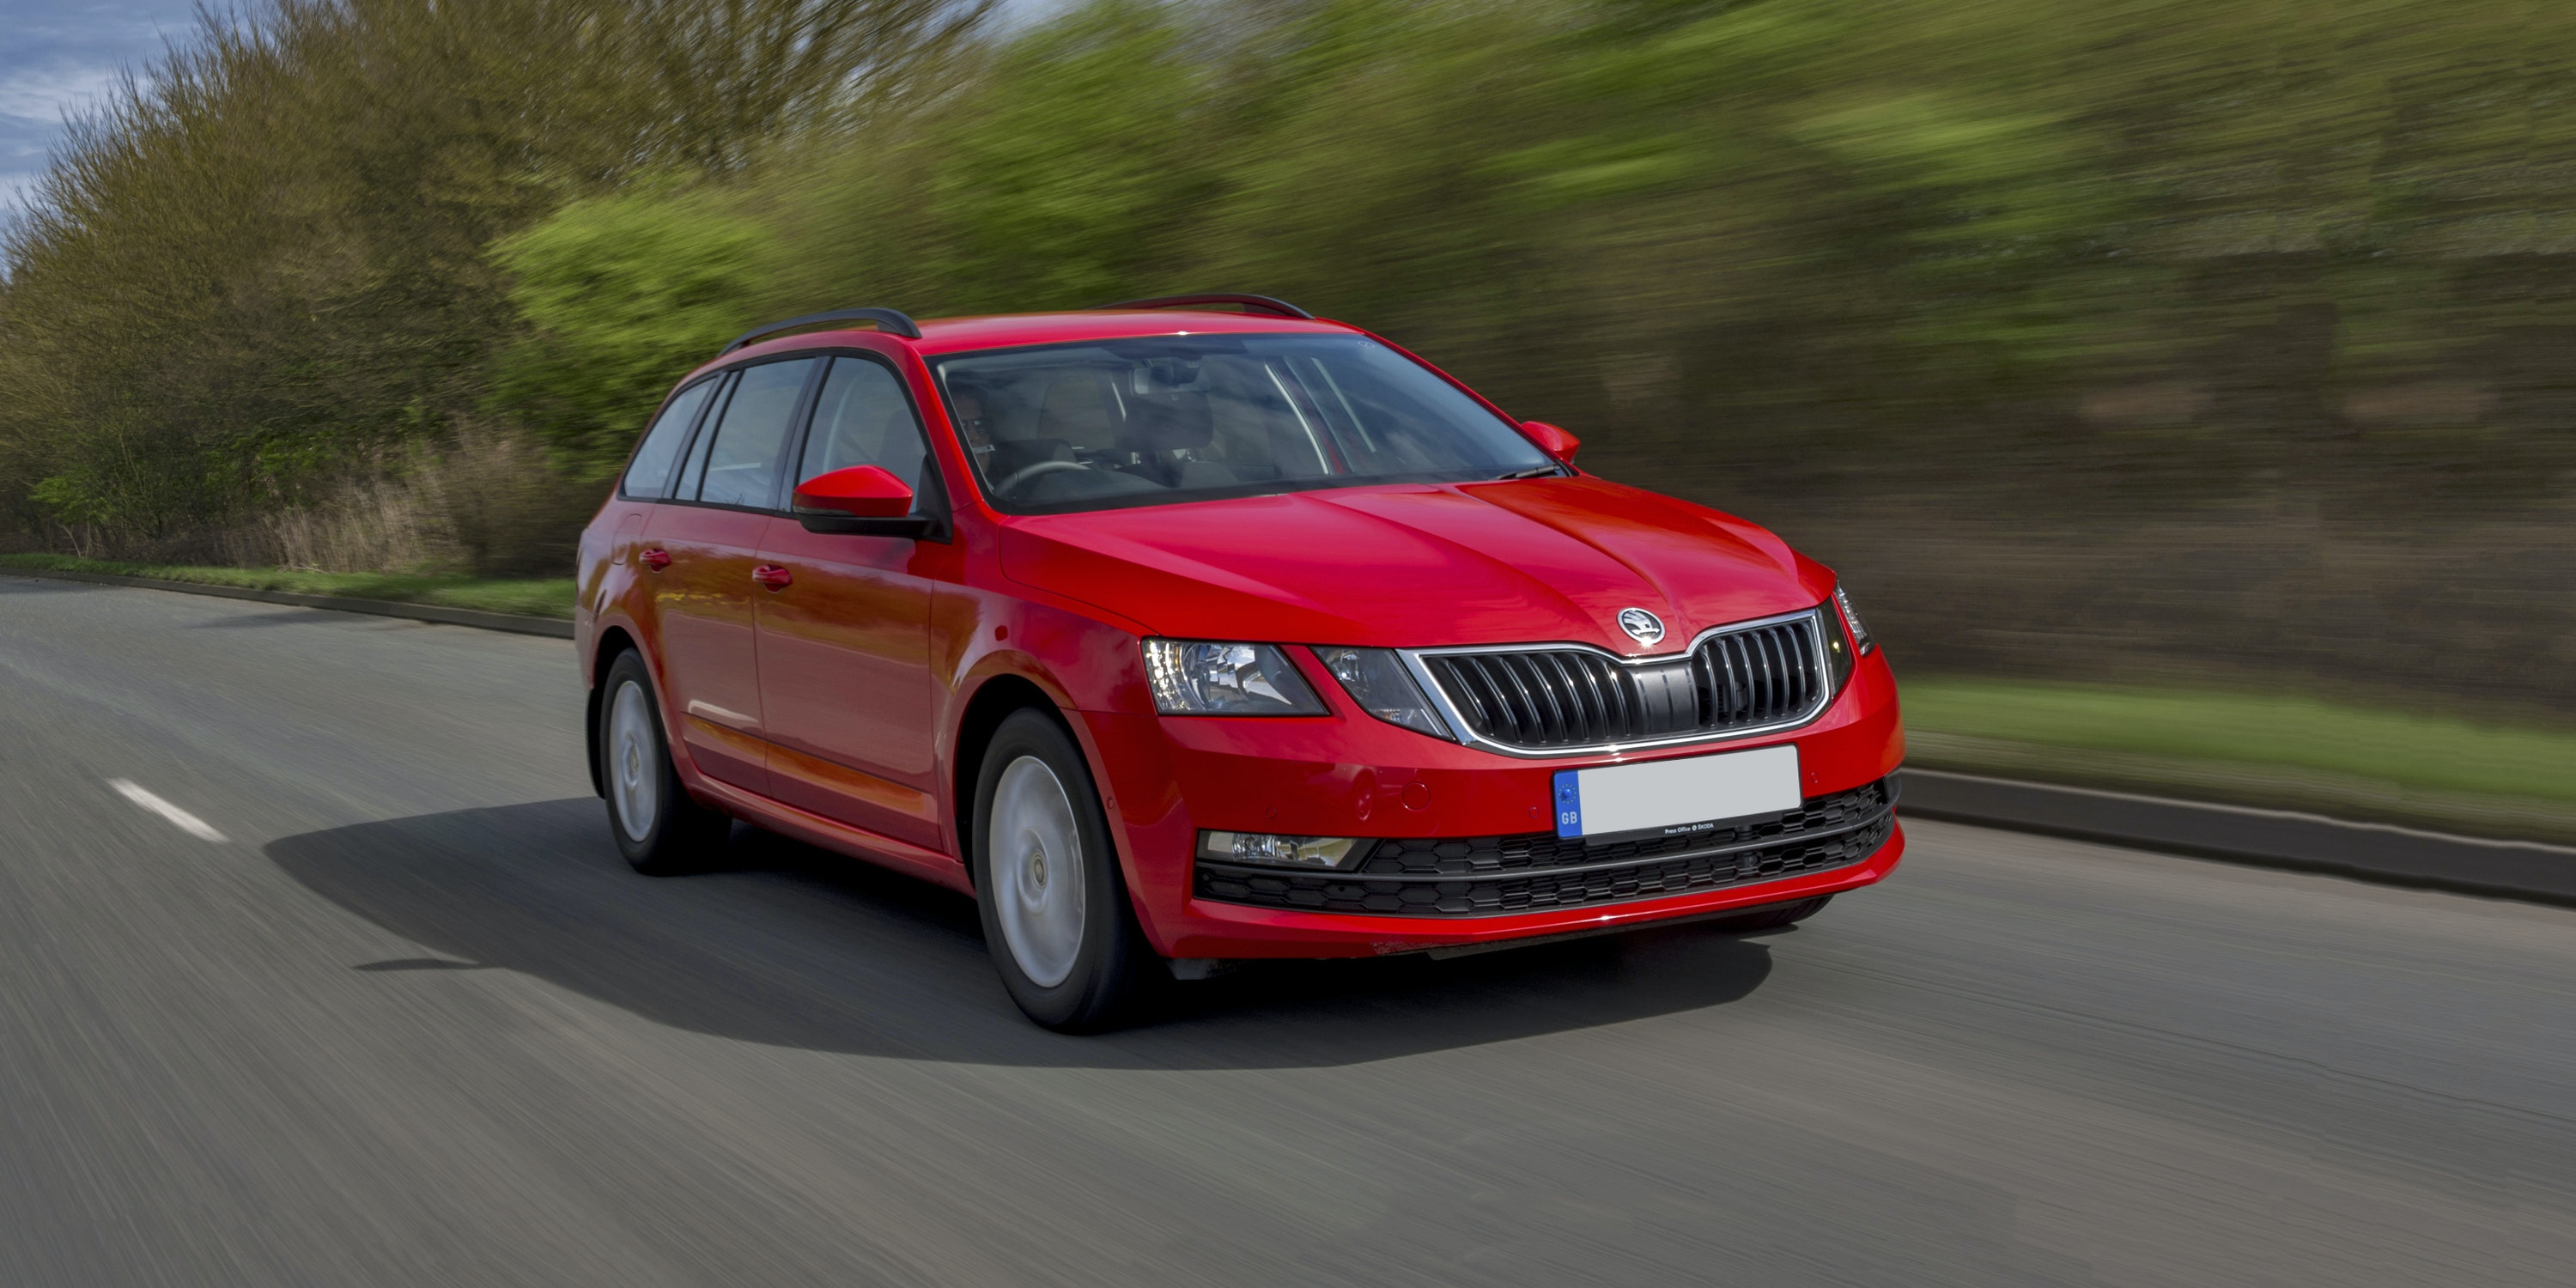 The Skoda Octavia's hugely practical for this price of car